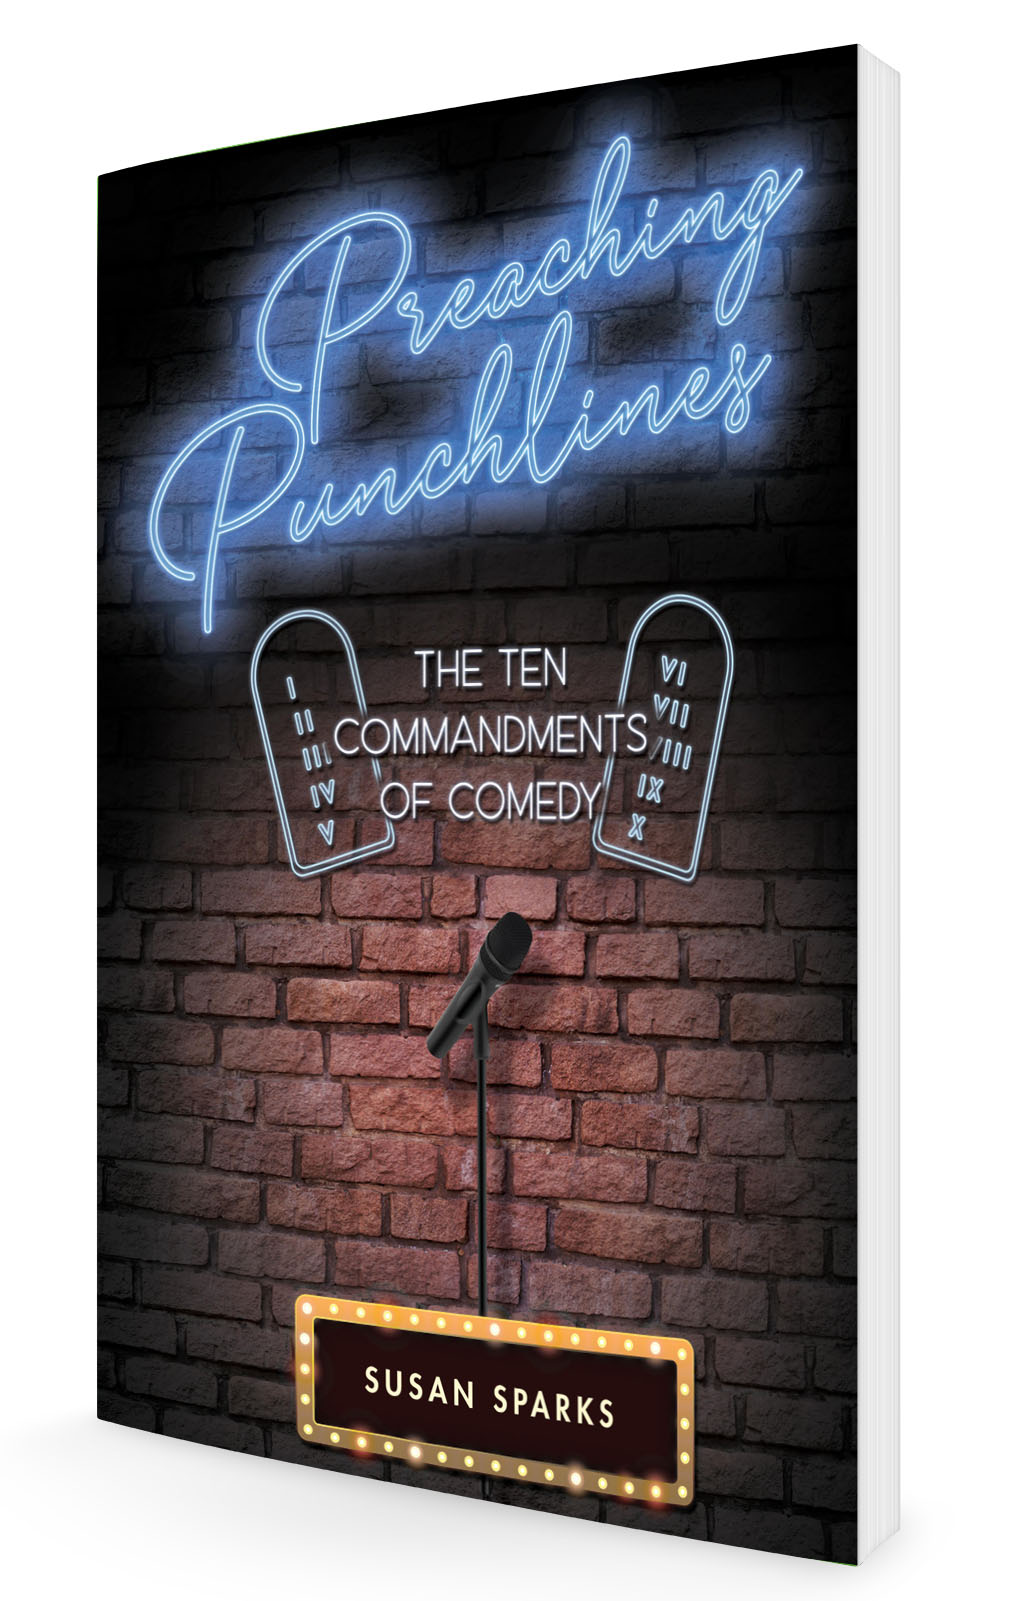 <h2>Preaching Punchlines:<br /> The Ten Commandments of Comedy</h2>